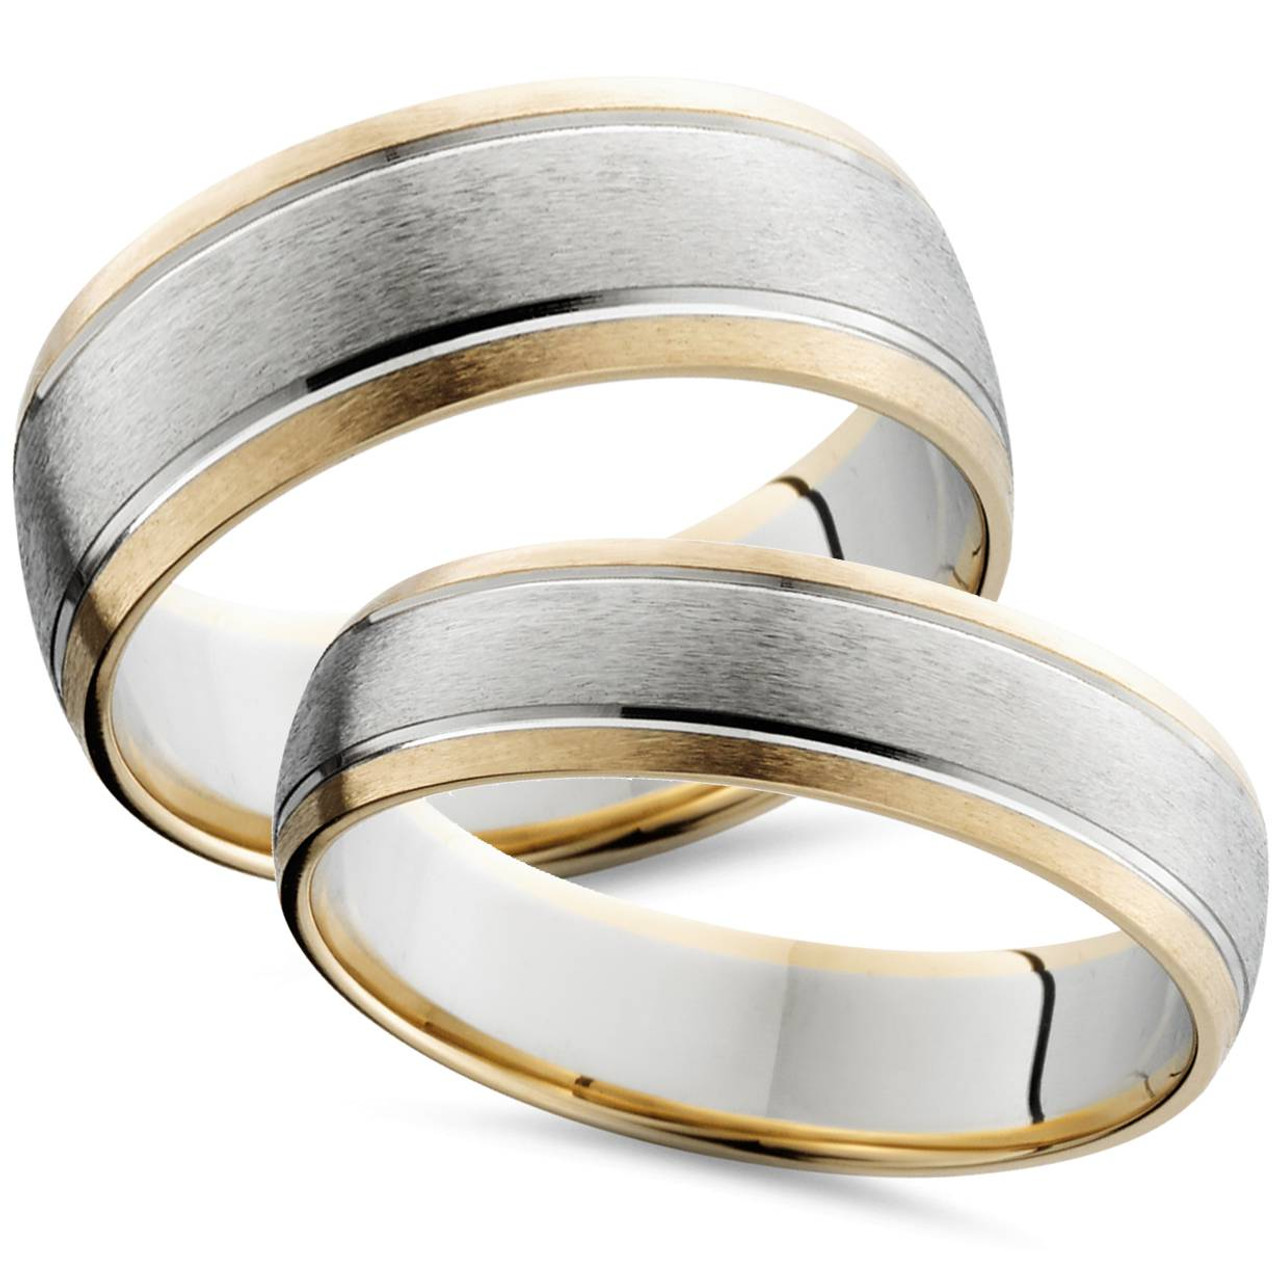 c9d585880a546b ... Gold Matching Wedding Ring Set His Hers Brushed Band. WBS1558.  https://d3d71ba2asa5oz.cloudfront.net/53000589/images/wbs1558large.